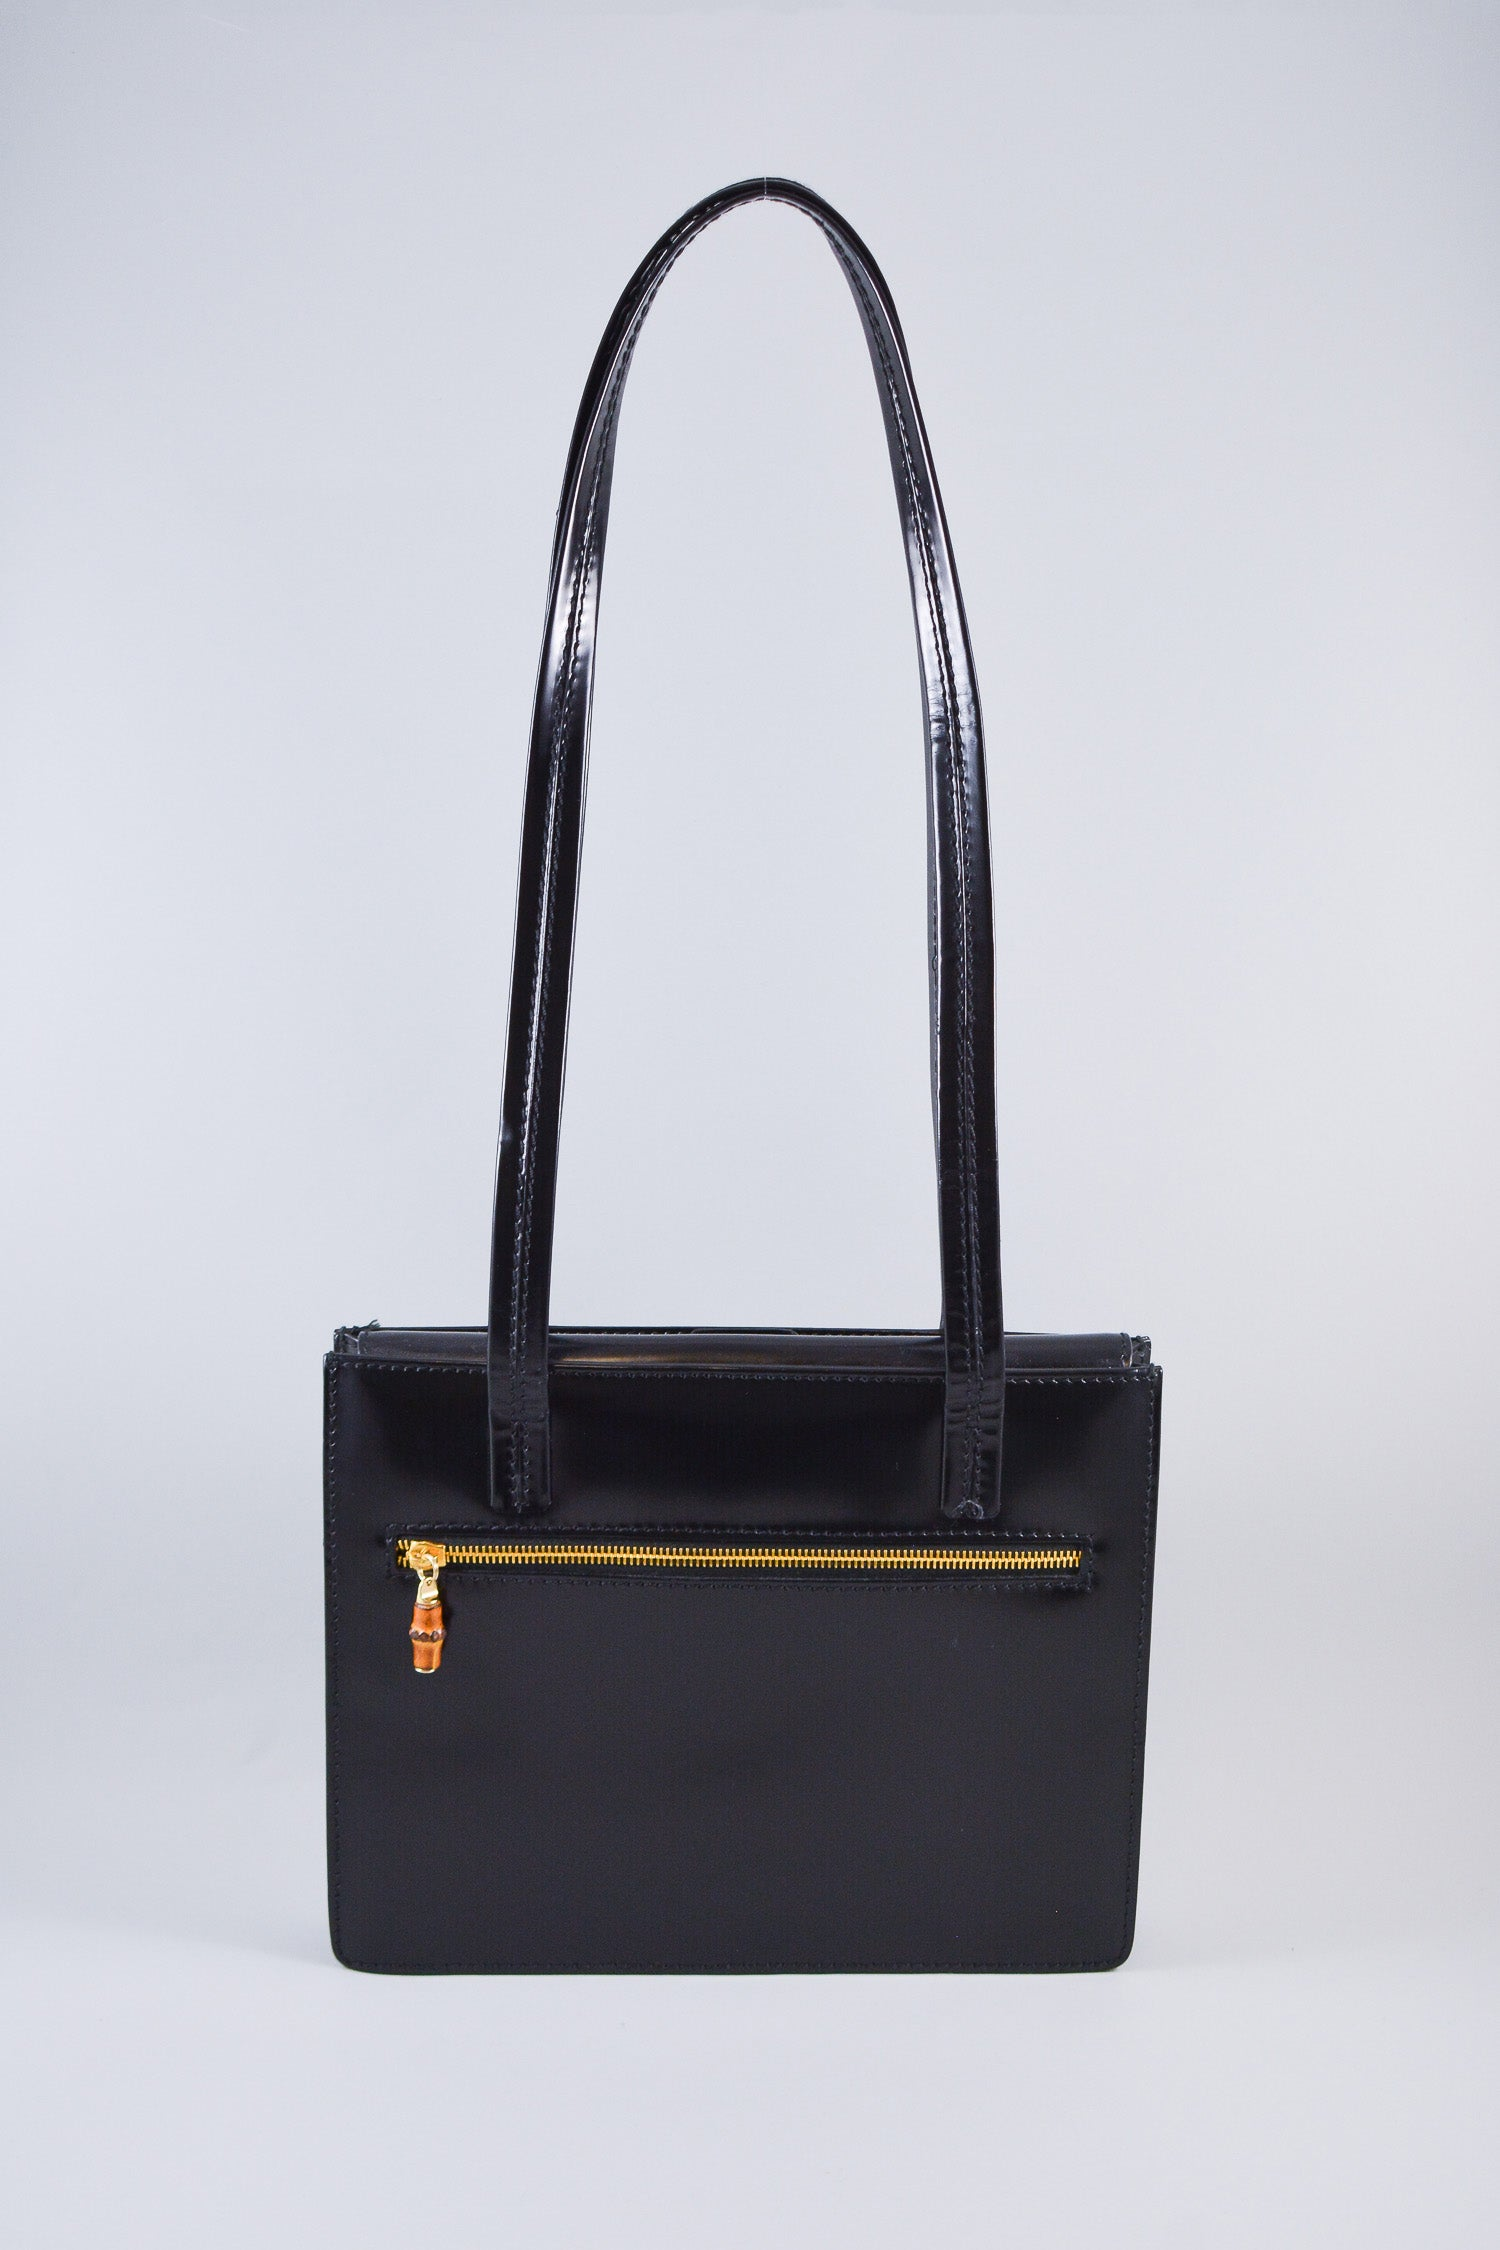 Gucci Black Small Leather Shoulder Tote